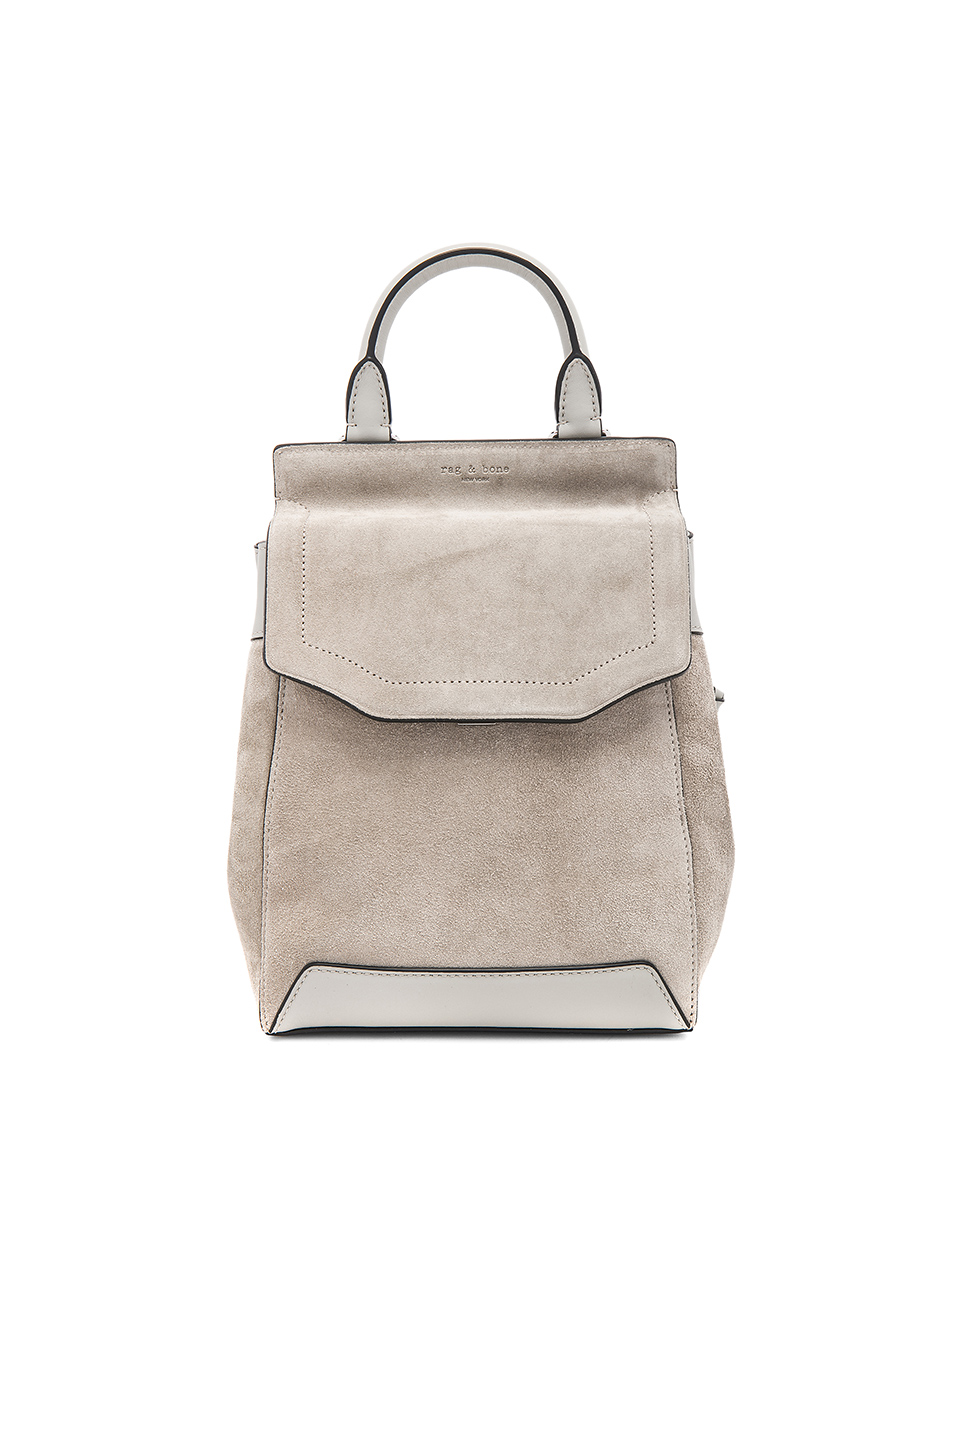 SMALL PILOT BACKPACK IN GRAY.